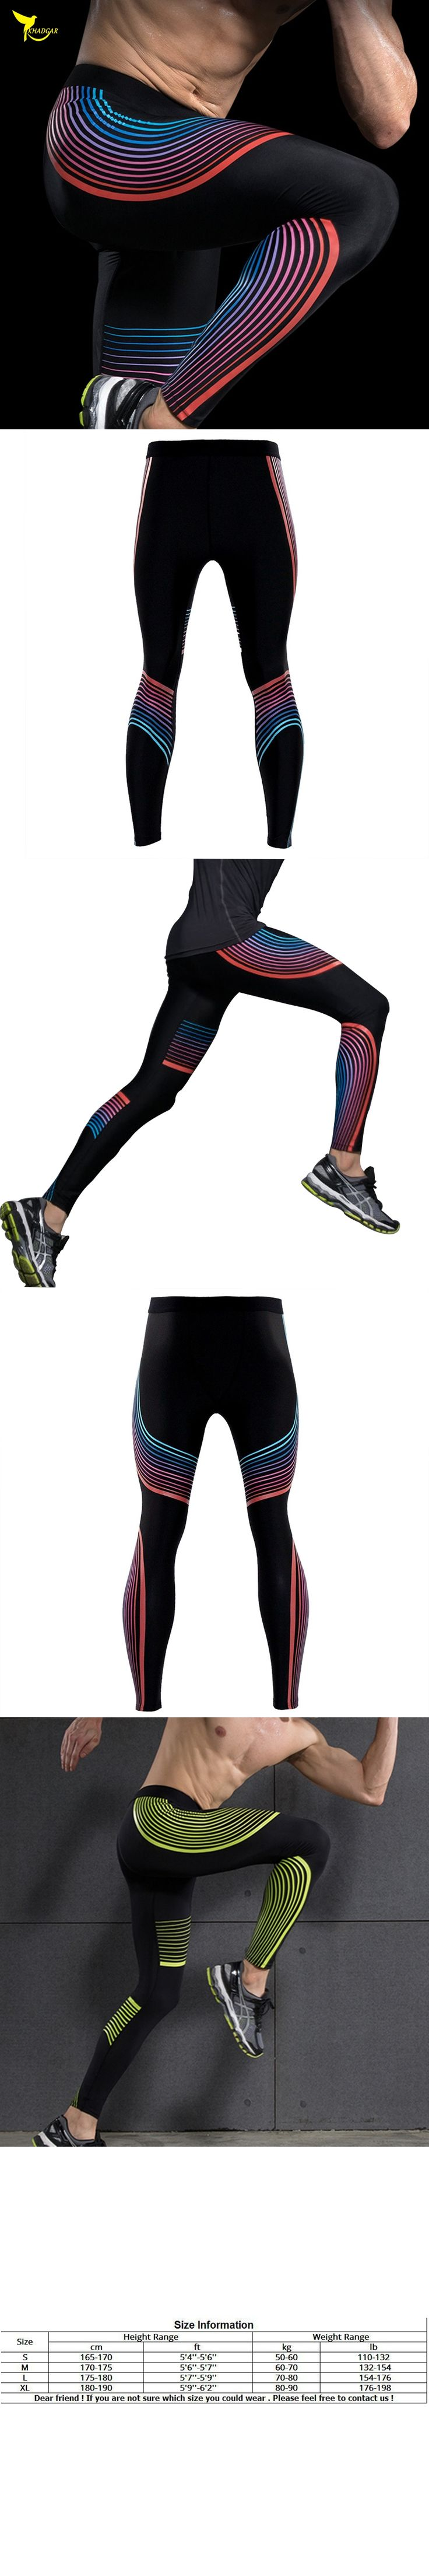 Mens Skinny Pants 2018 New Compression Tights Brand Clothes Base Layer Exercise Fitness Long Leggings Trousers Leisure Pants Man